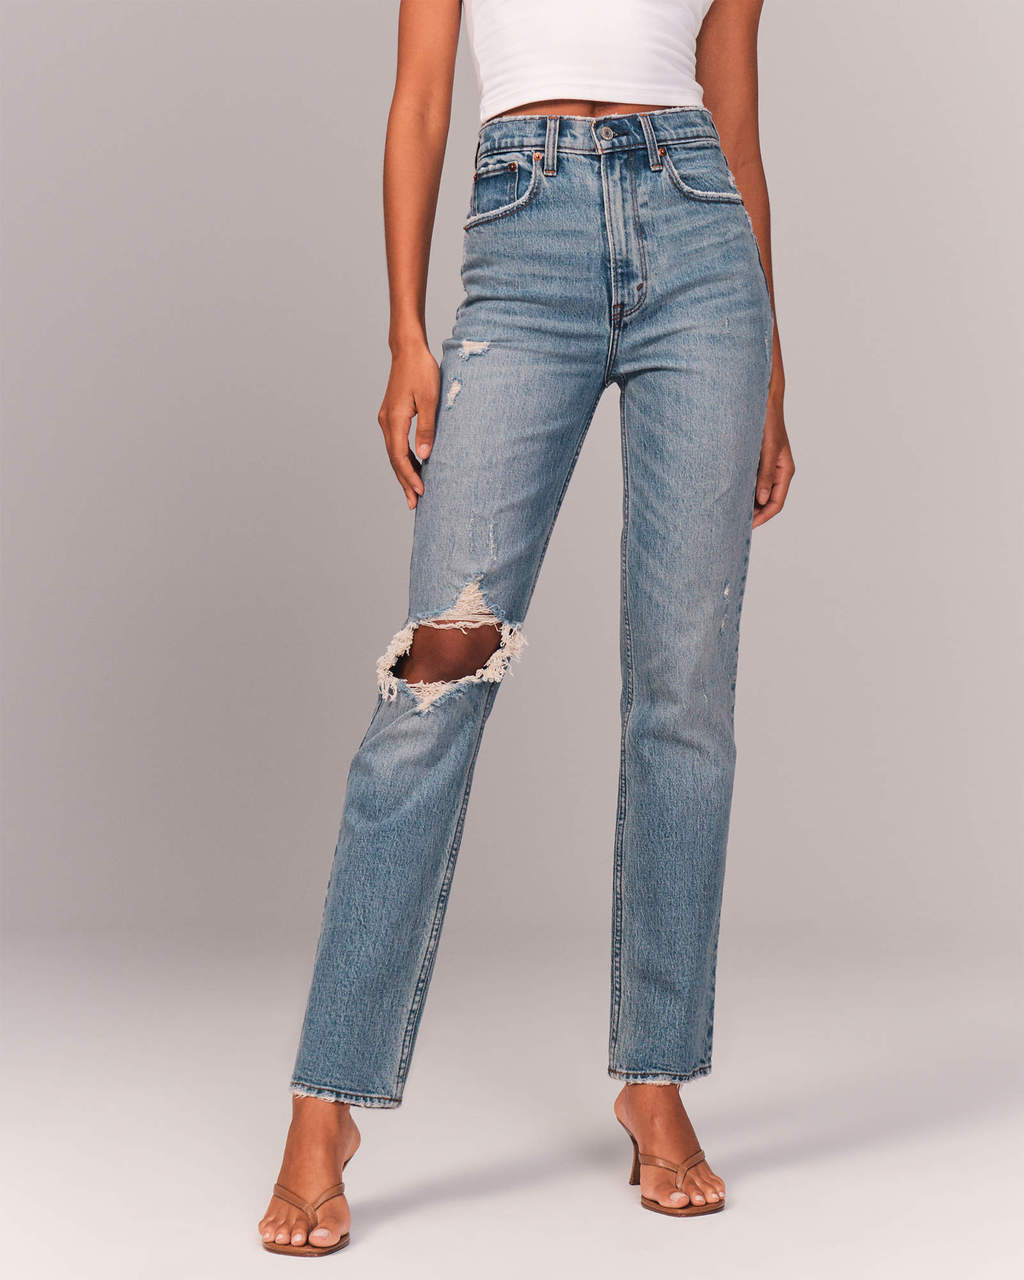 Abercrombie & Fitch 90s Ultra High Rise Straight Jeans